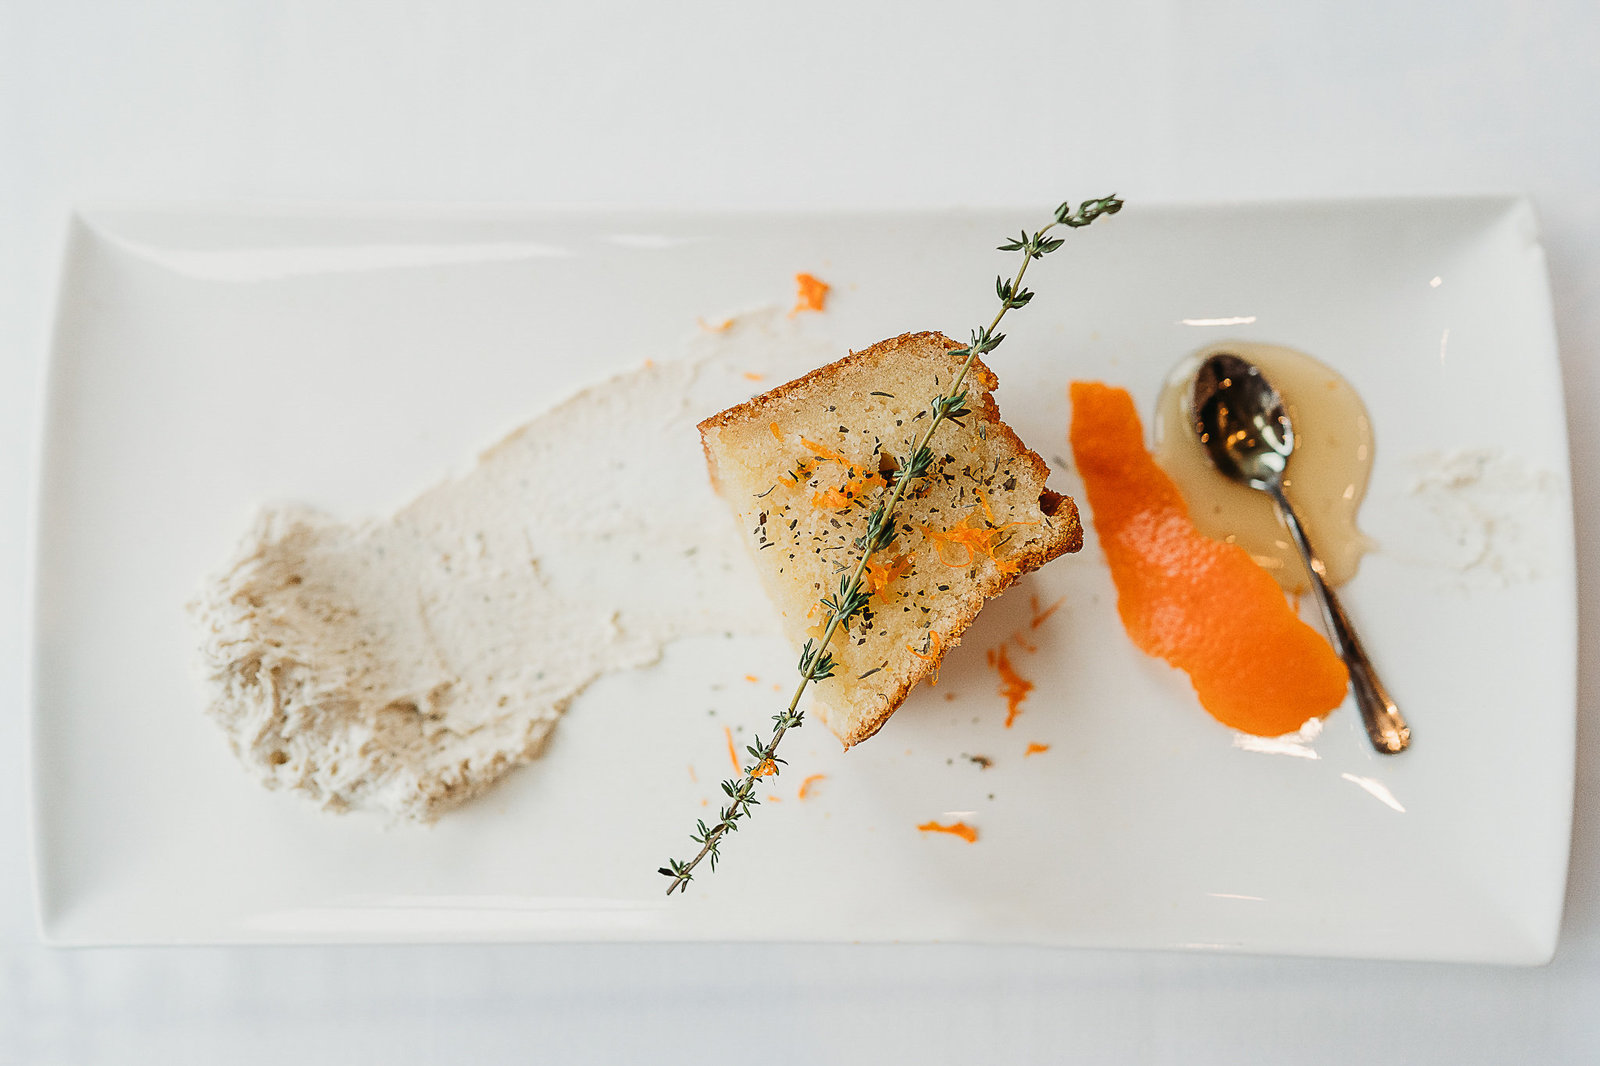 overhead shot of a dessert with orange peels on a white plate